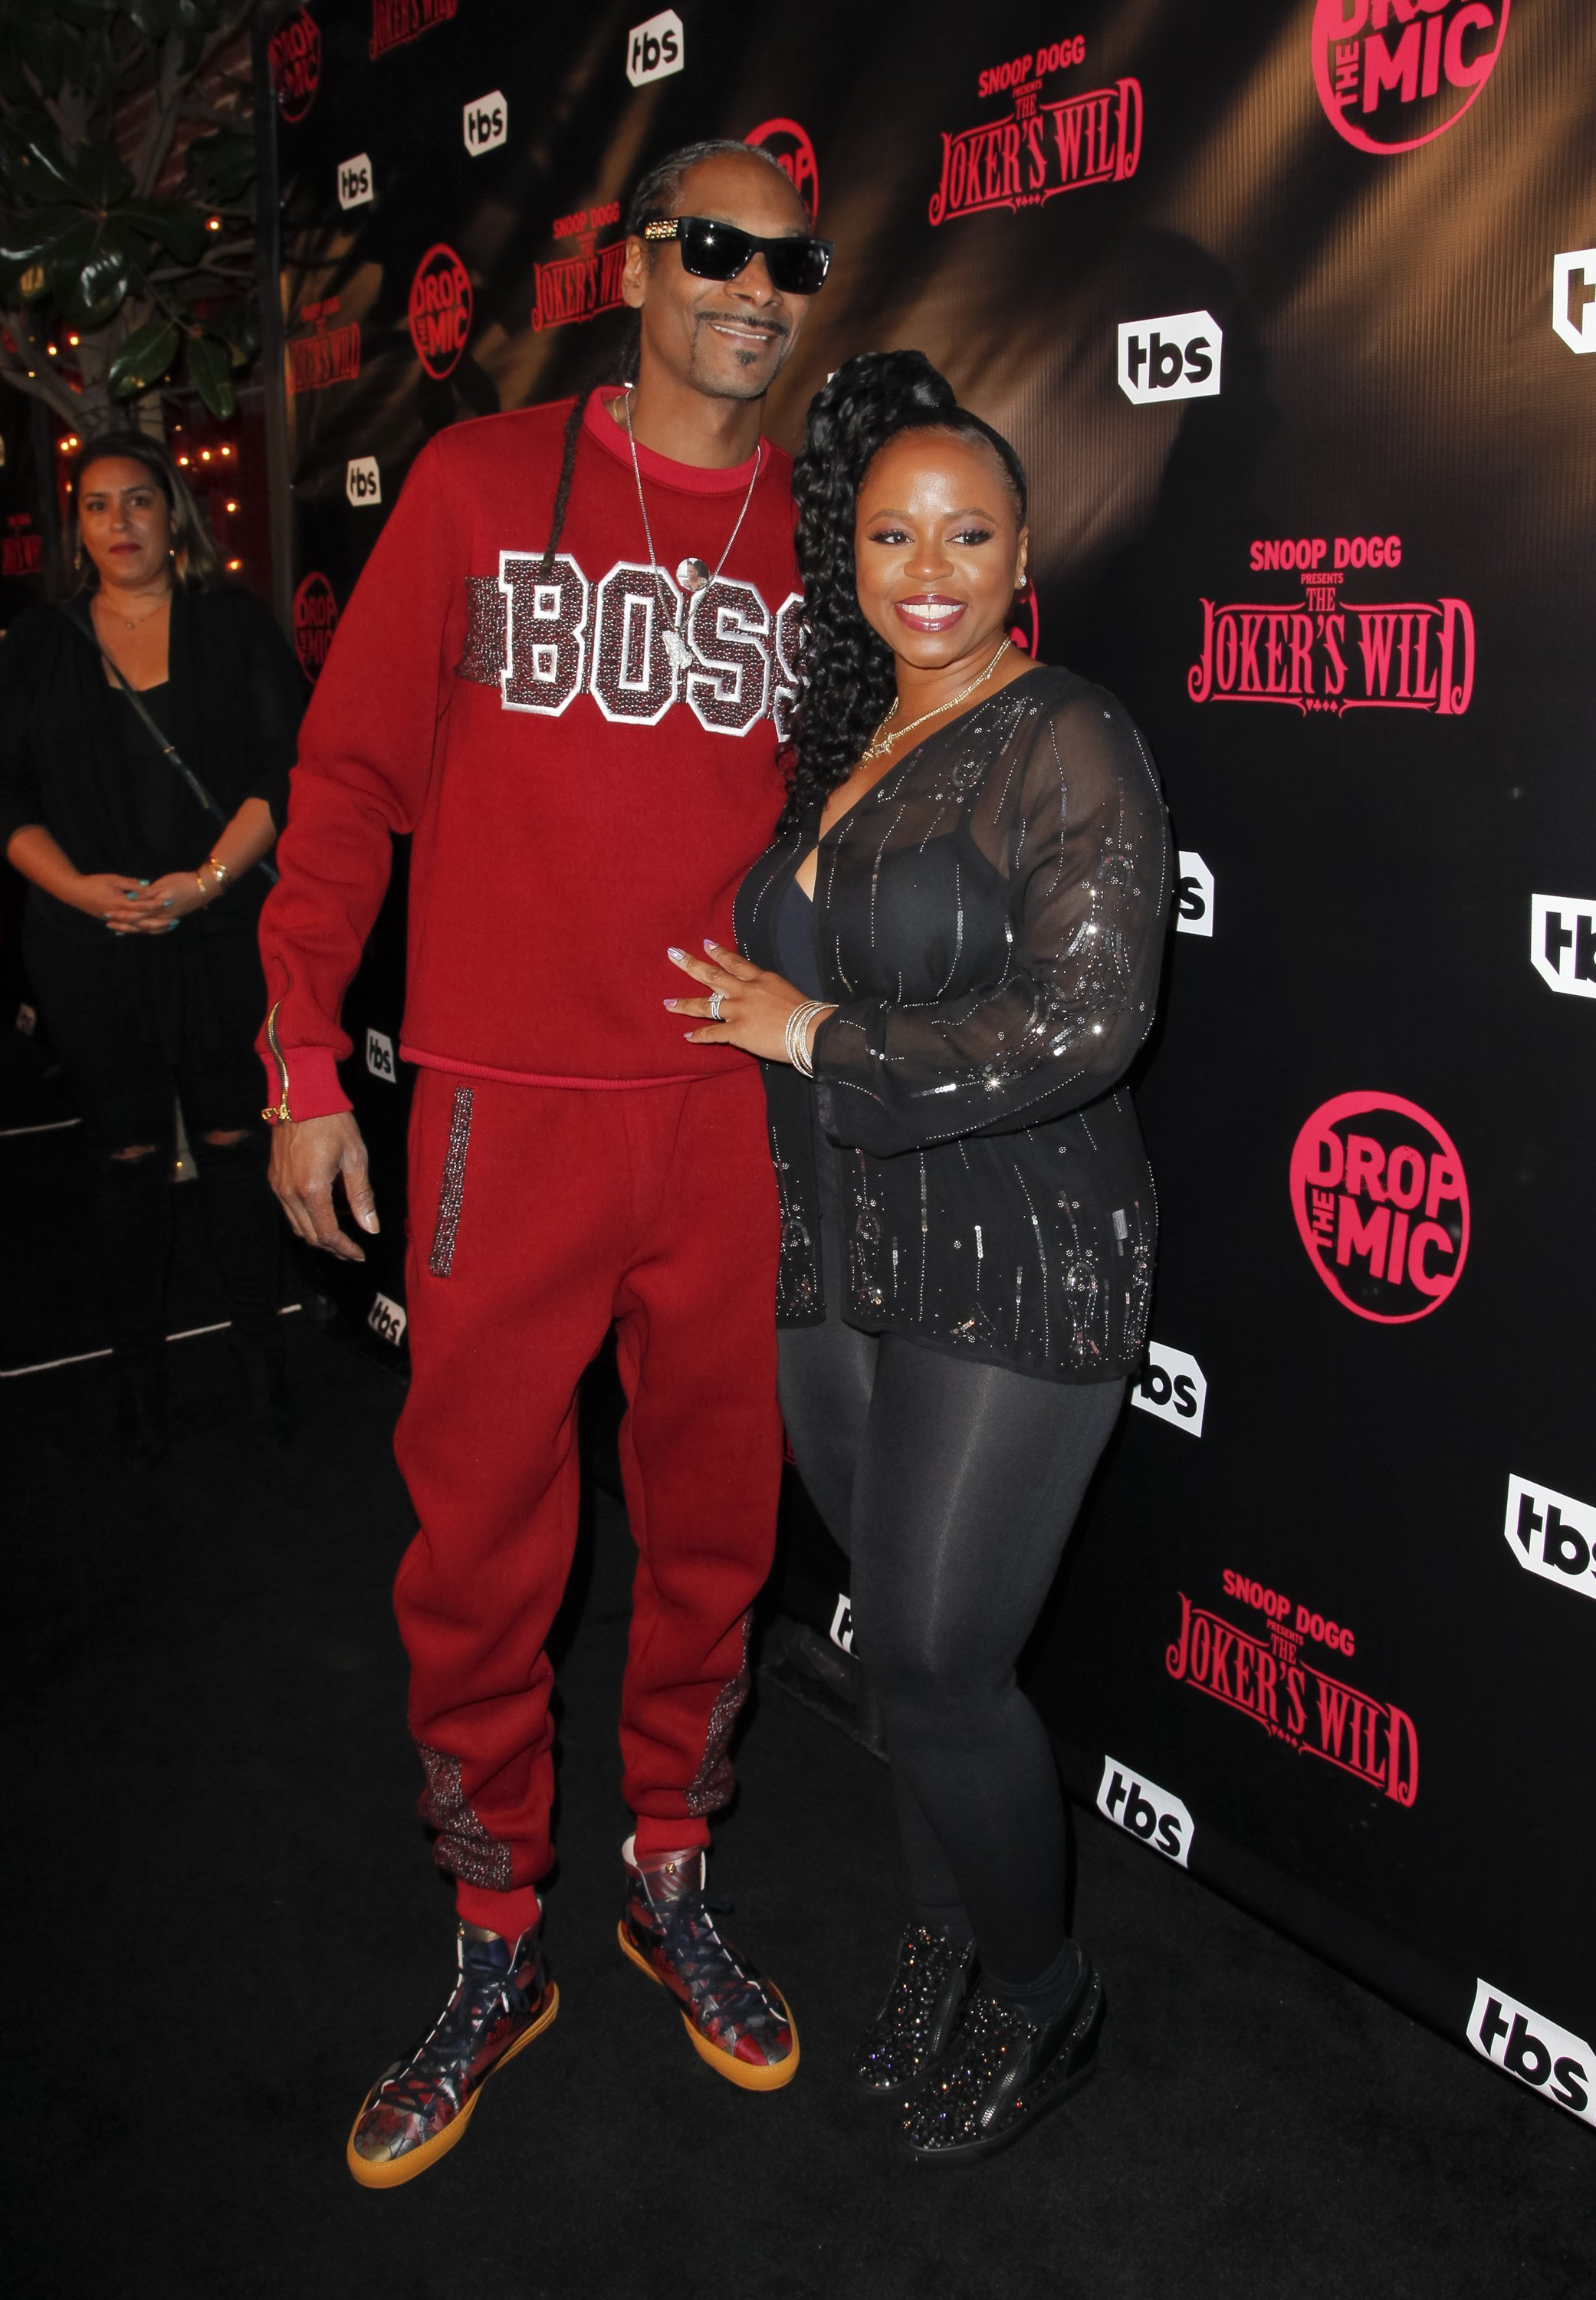 Snoop Dogg & Shante Broadus at the premiere for 'Drop The Mic' and 'The Joker's Wild' on Oct. 11, 2017 in California | Photo: Getty Images